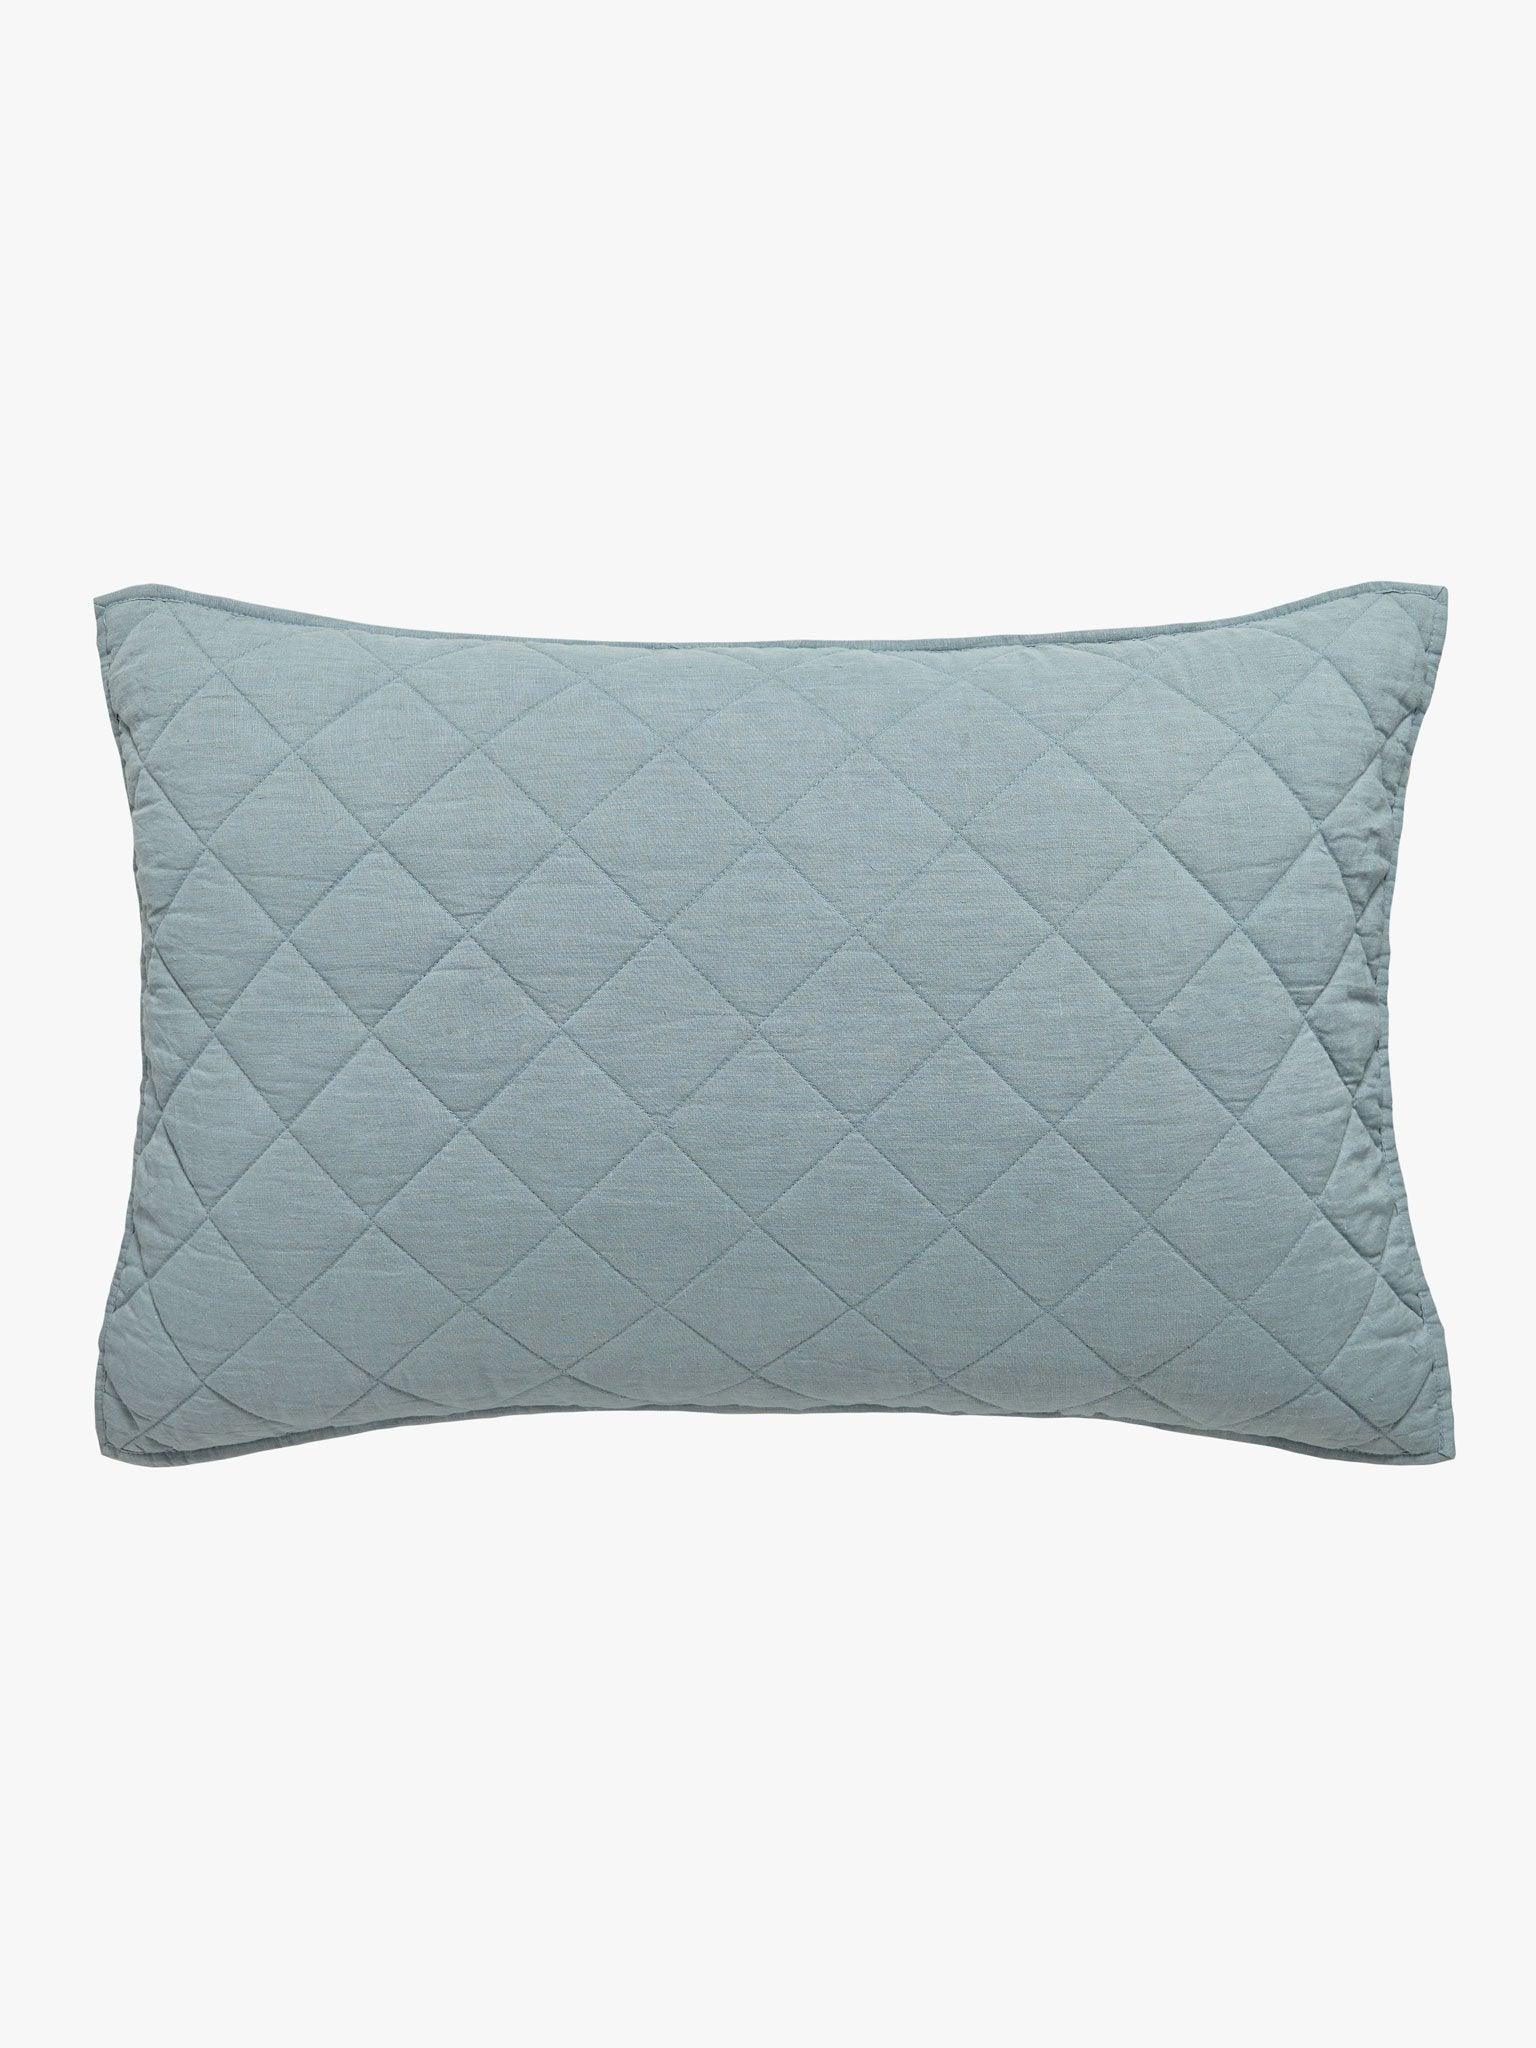 Soho Lake Pillowcases Quilted Pillowcase AW18 Standard Pillowcase